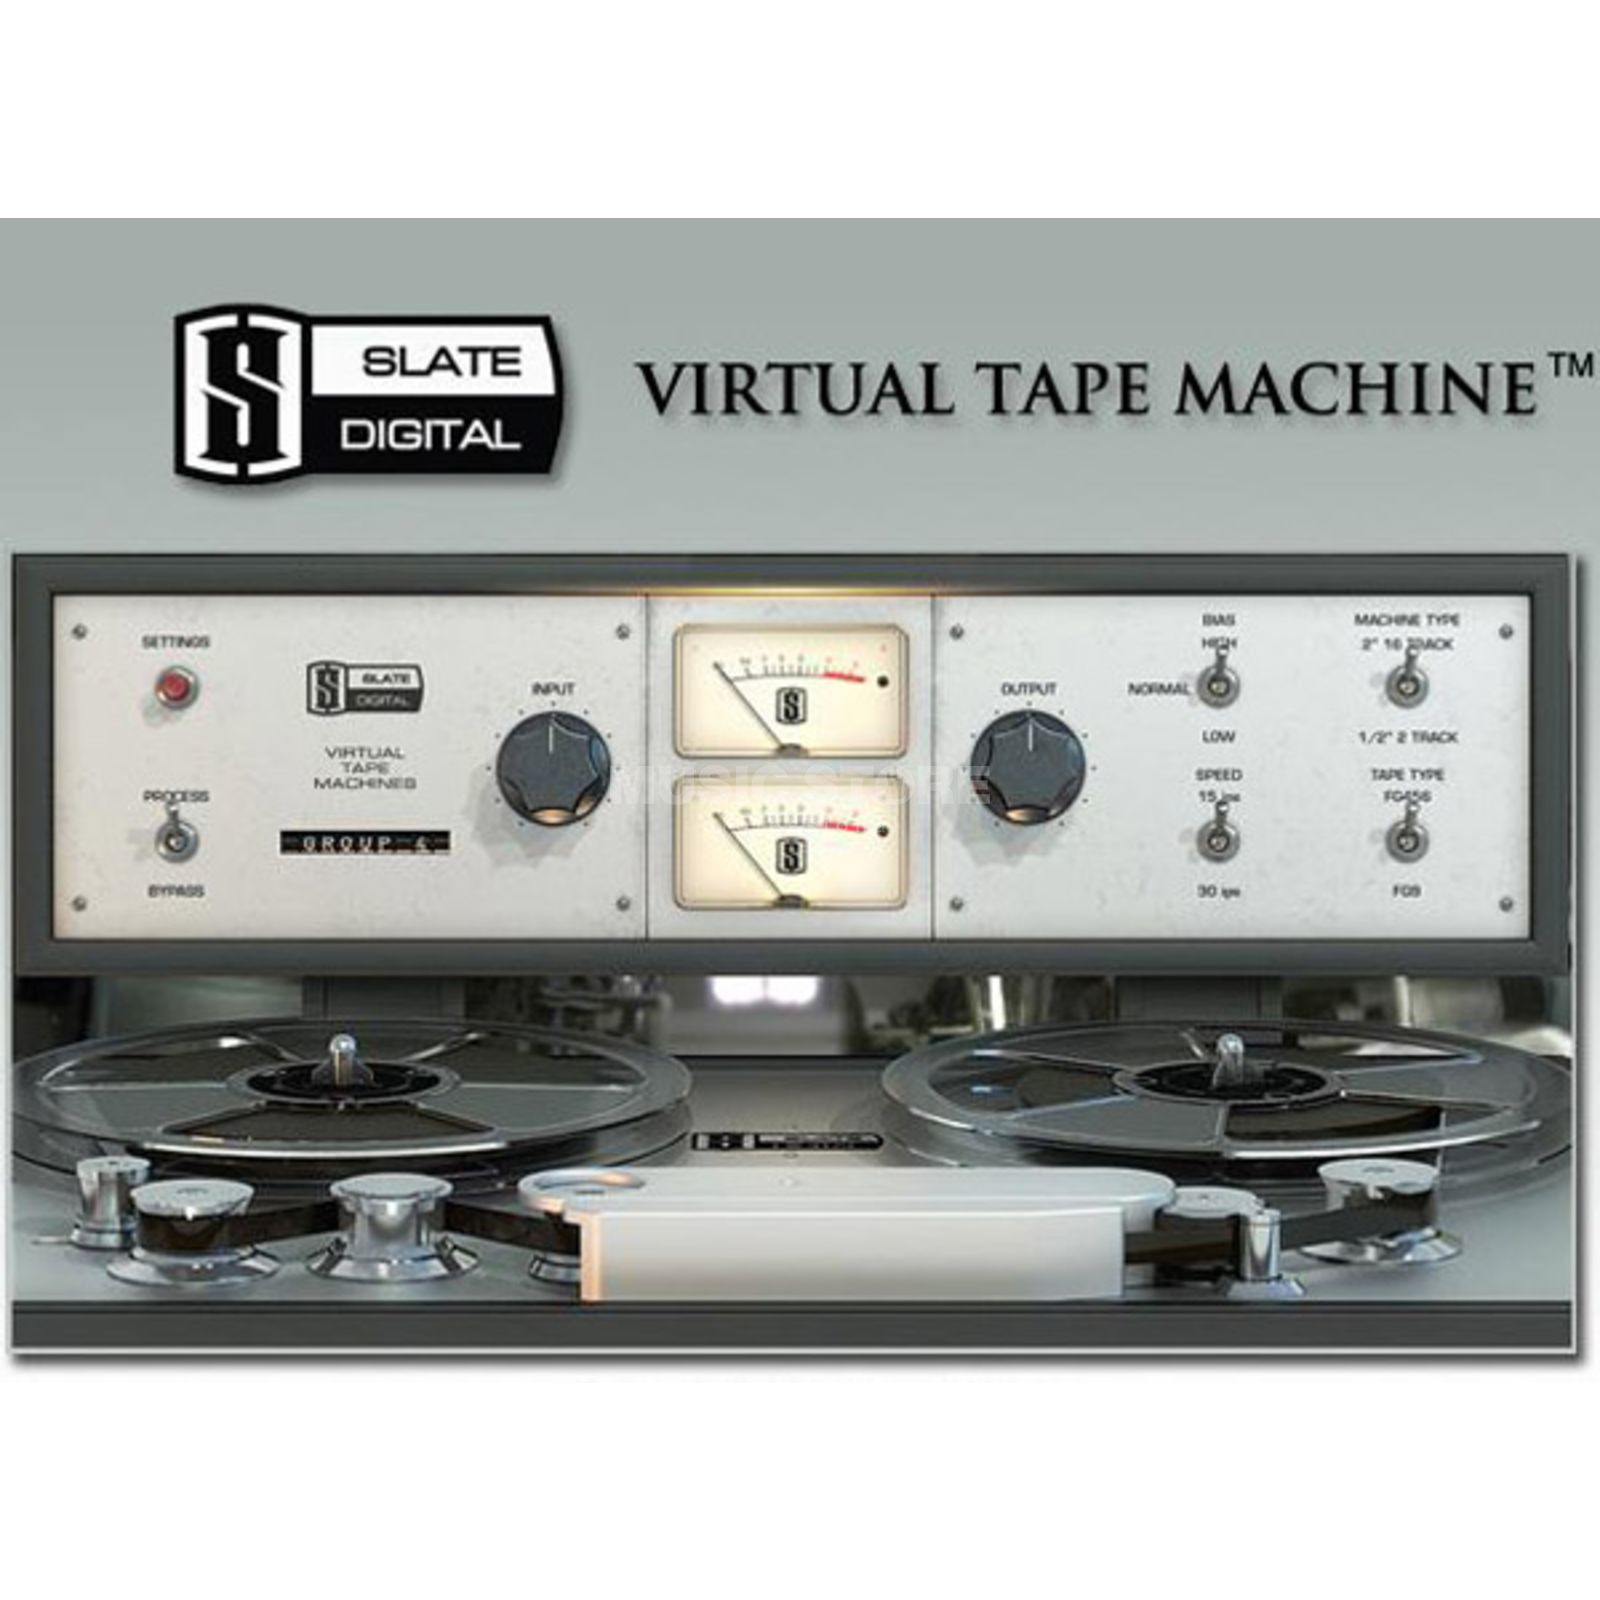 Slate Digital Virtual Tape Machines Analogue Tape Emulation Produktbillede